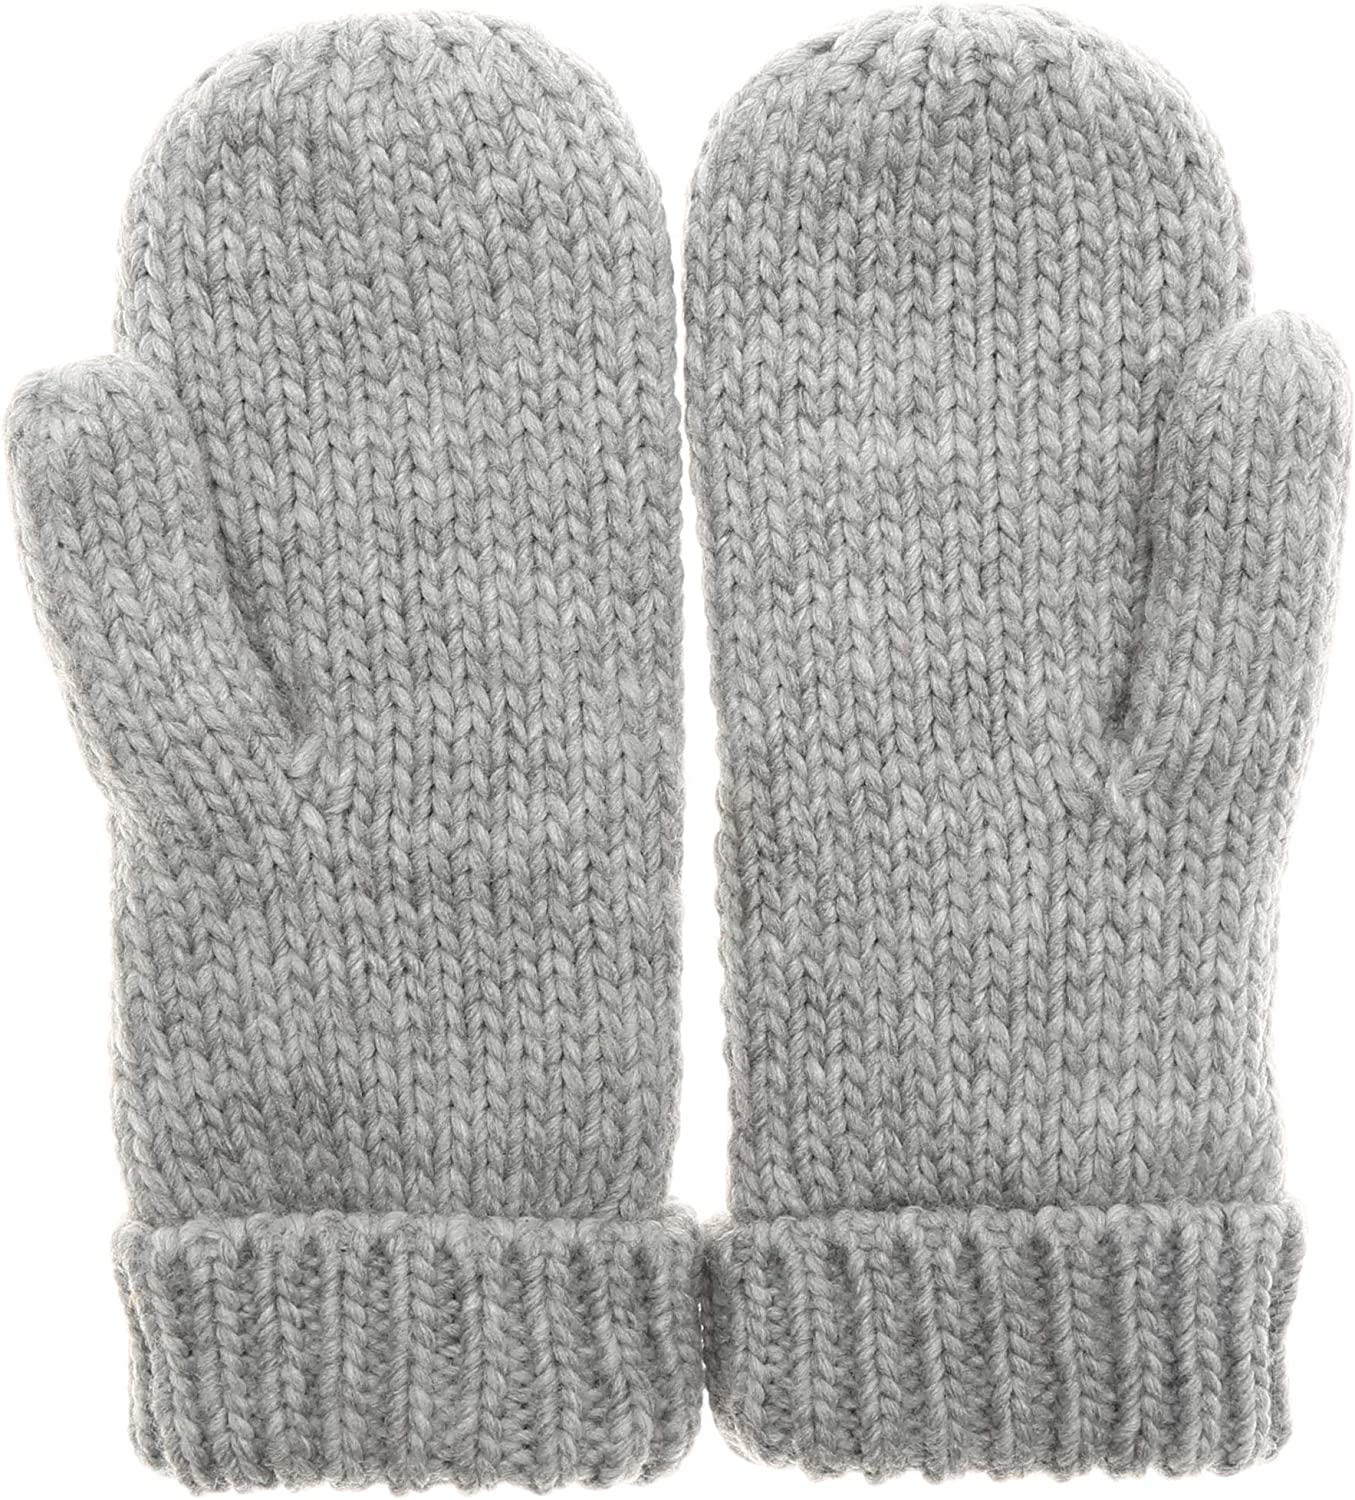 MIRMARU Women/'s Warm Winter Gloves Cozy Soft Cable Knit Mittens with Fleece Lining